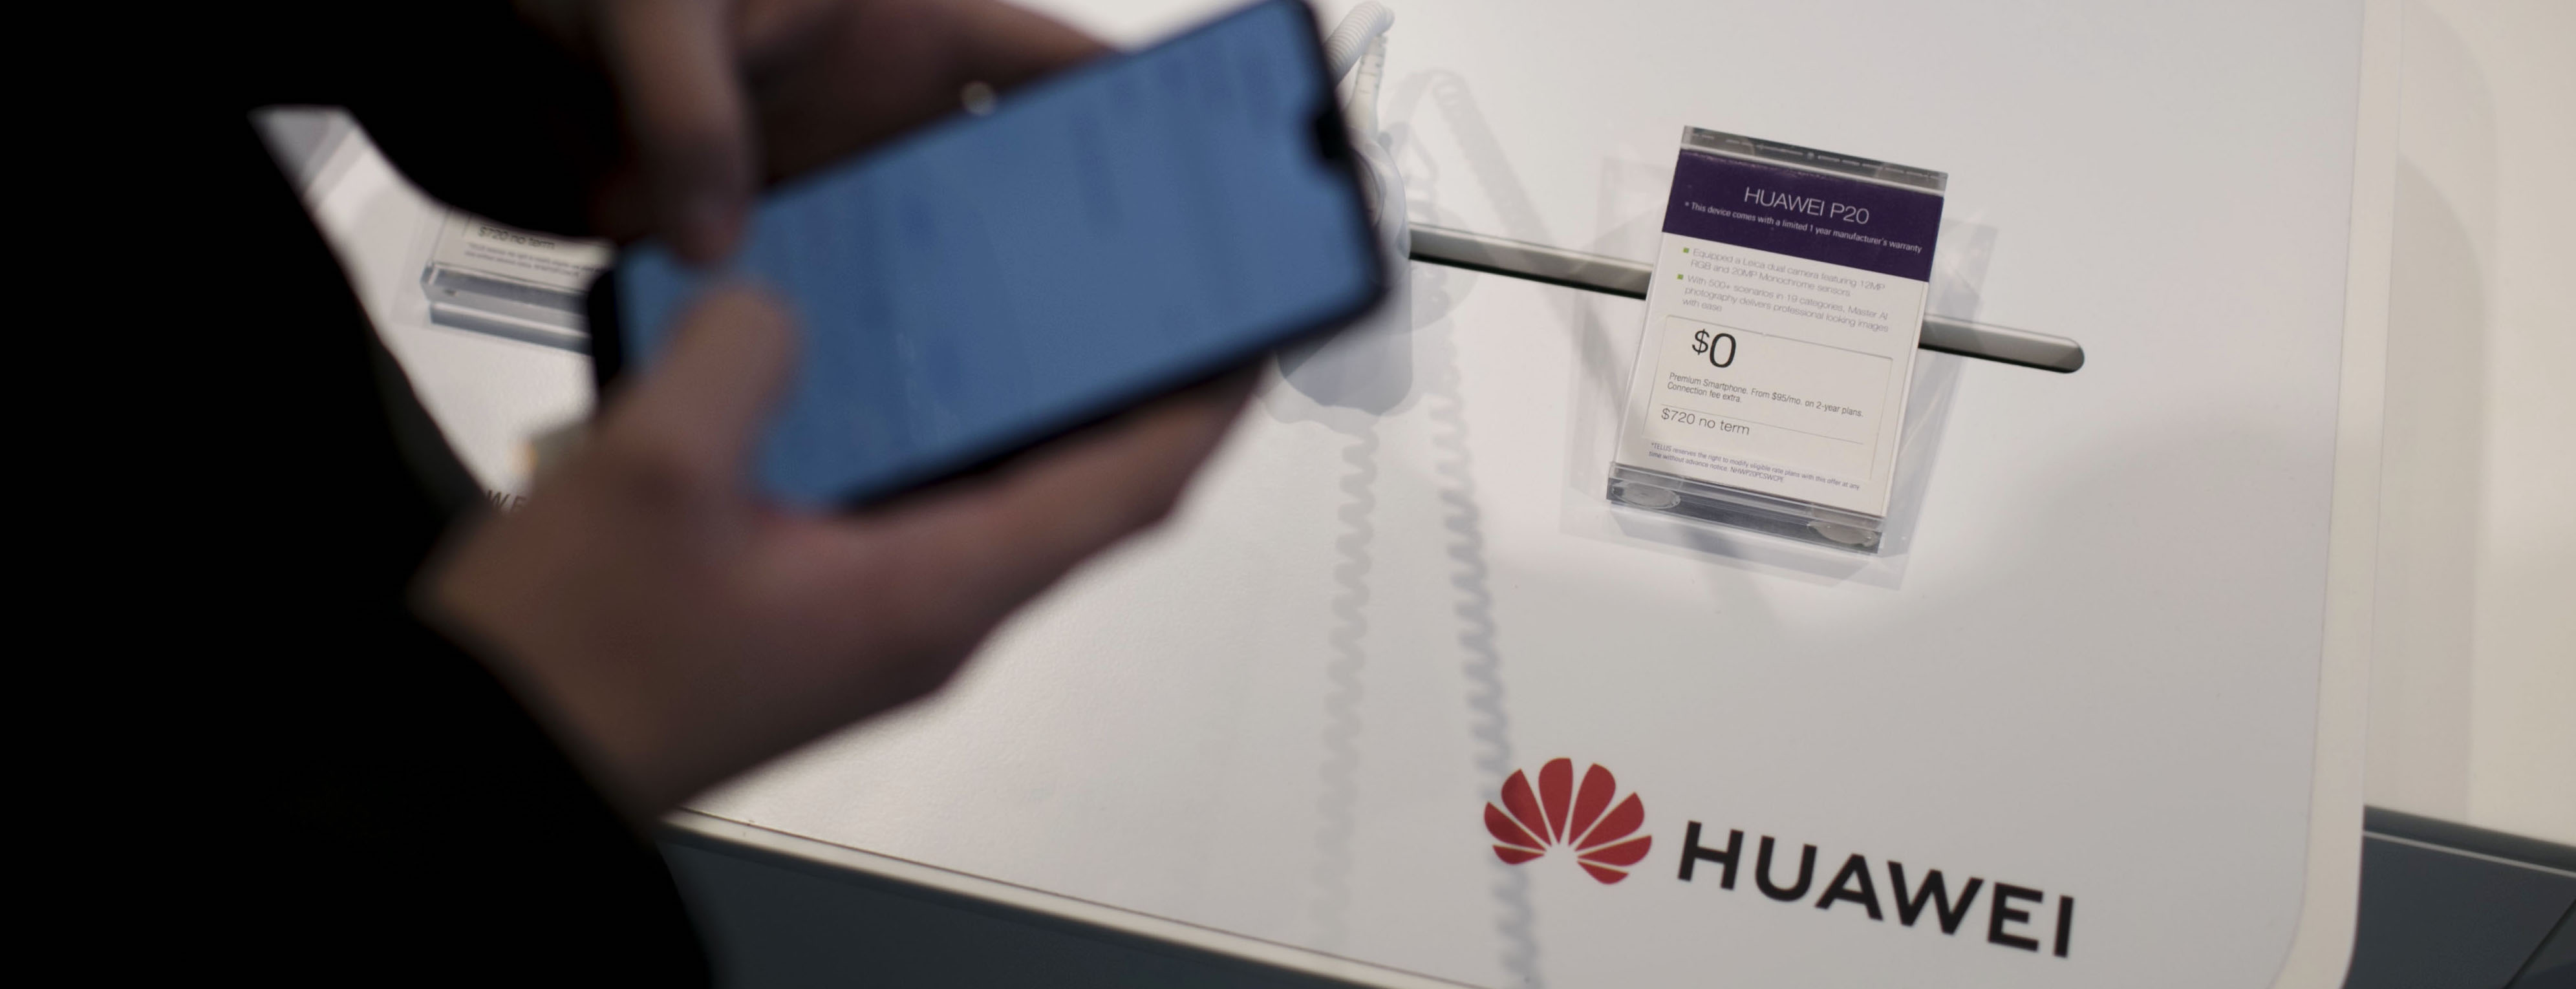 Canada has permitted Huawei to operate within the country (Photo: Brent Lewin via Getty)